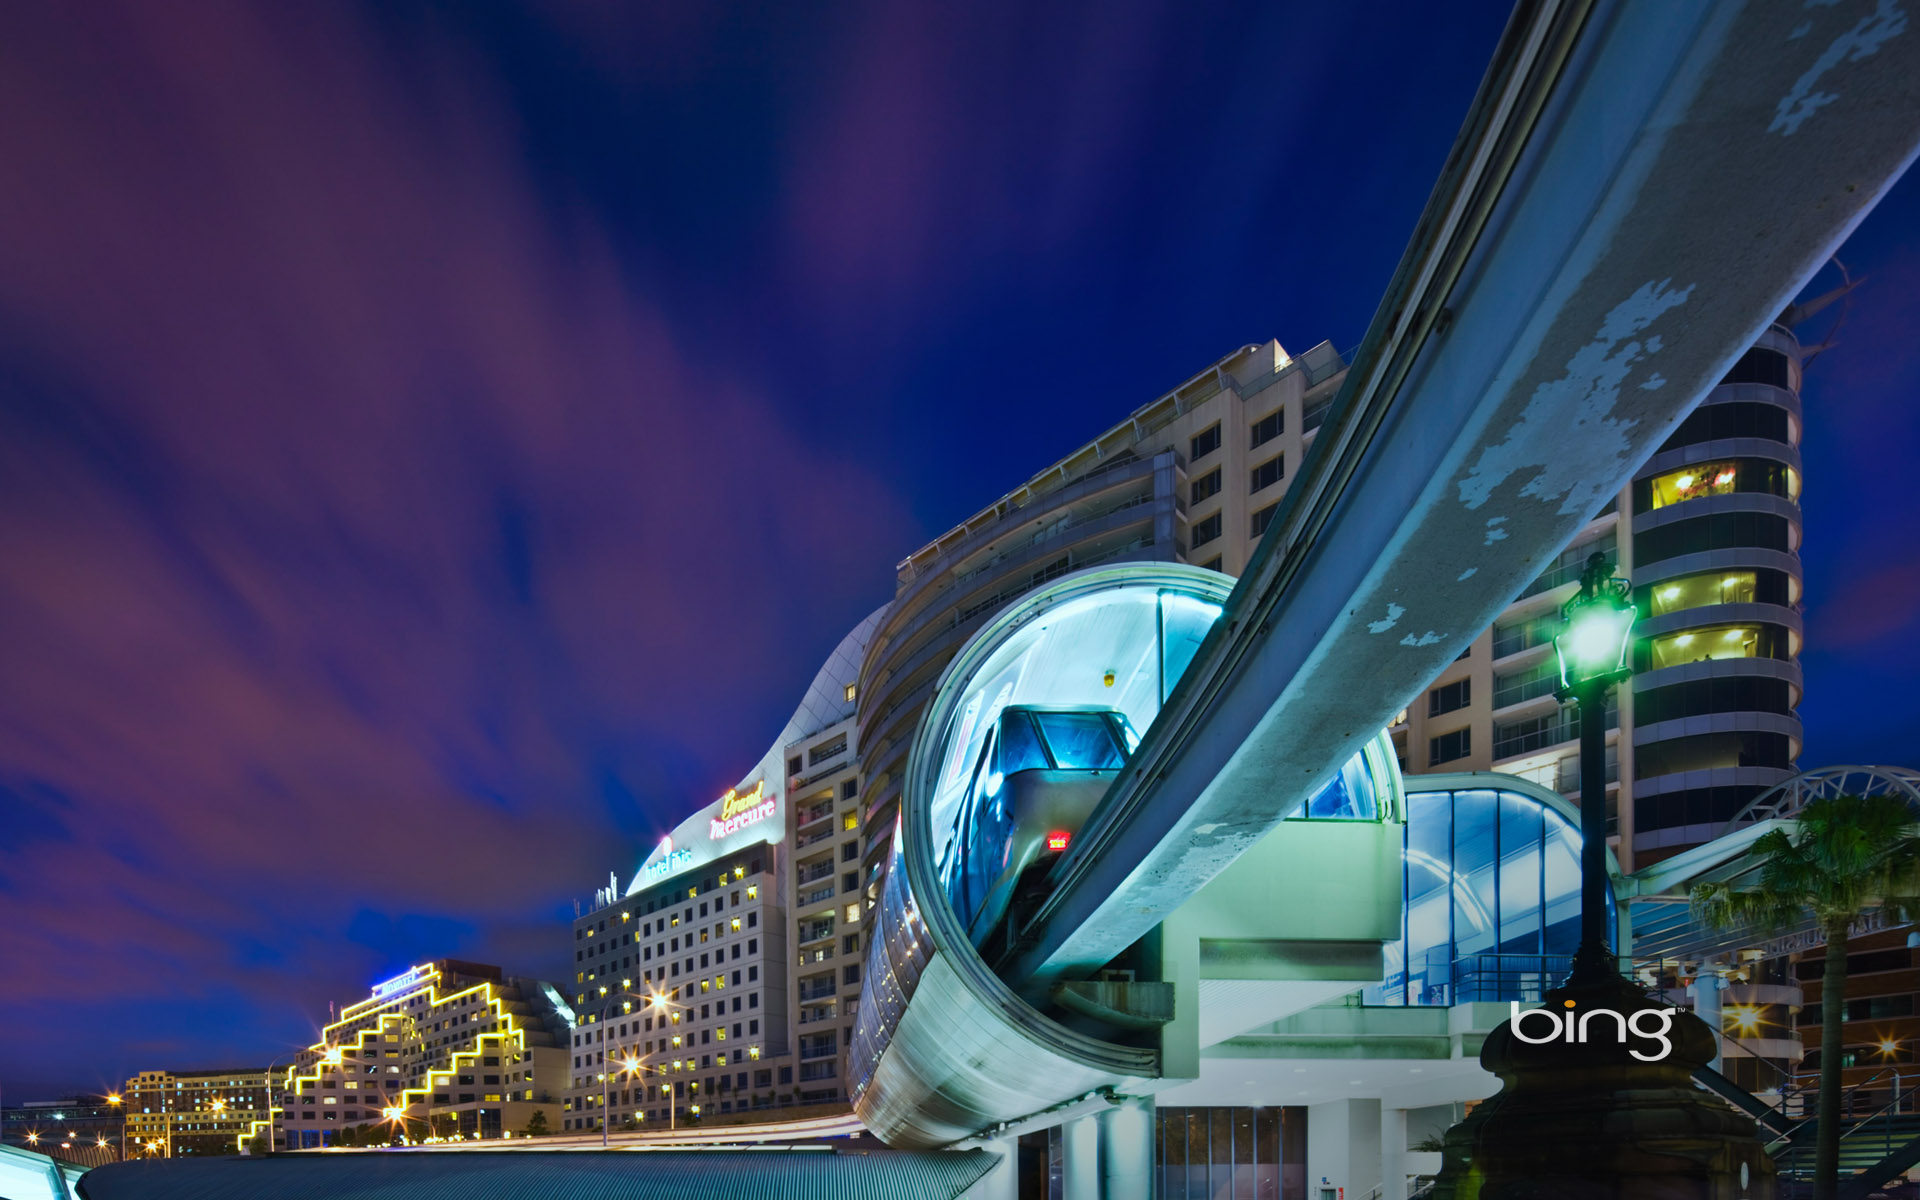 Monorail Darling Harbour Sydney7819315552 - Monorail Darling Harbour Sydney - Taipei, Sydney, Monorail, Harbour, Darling